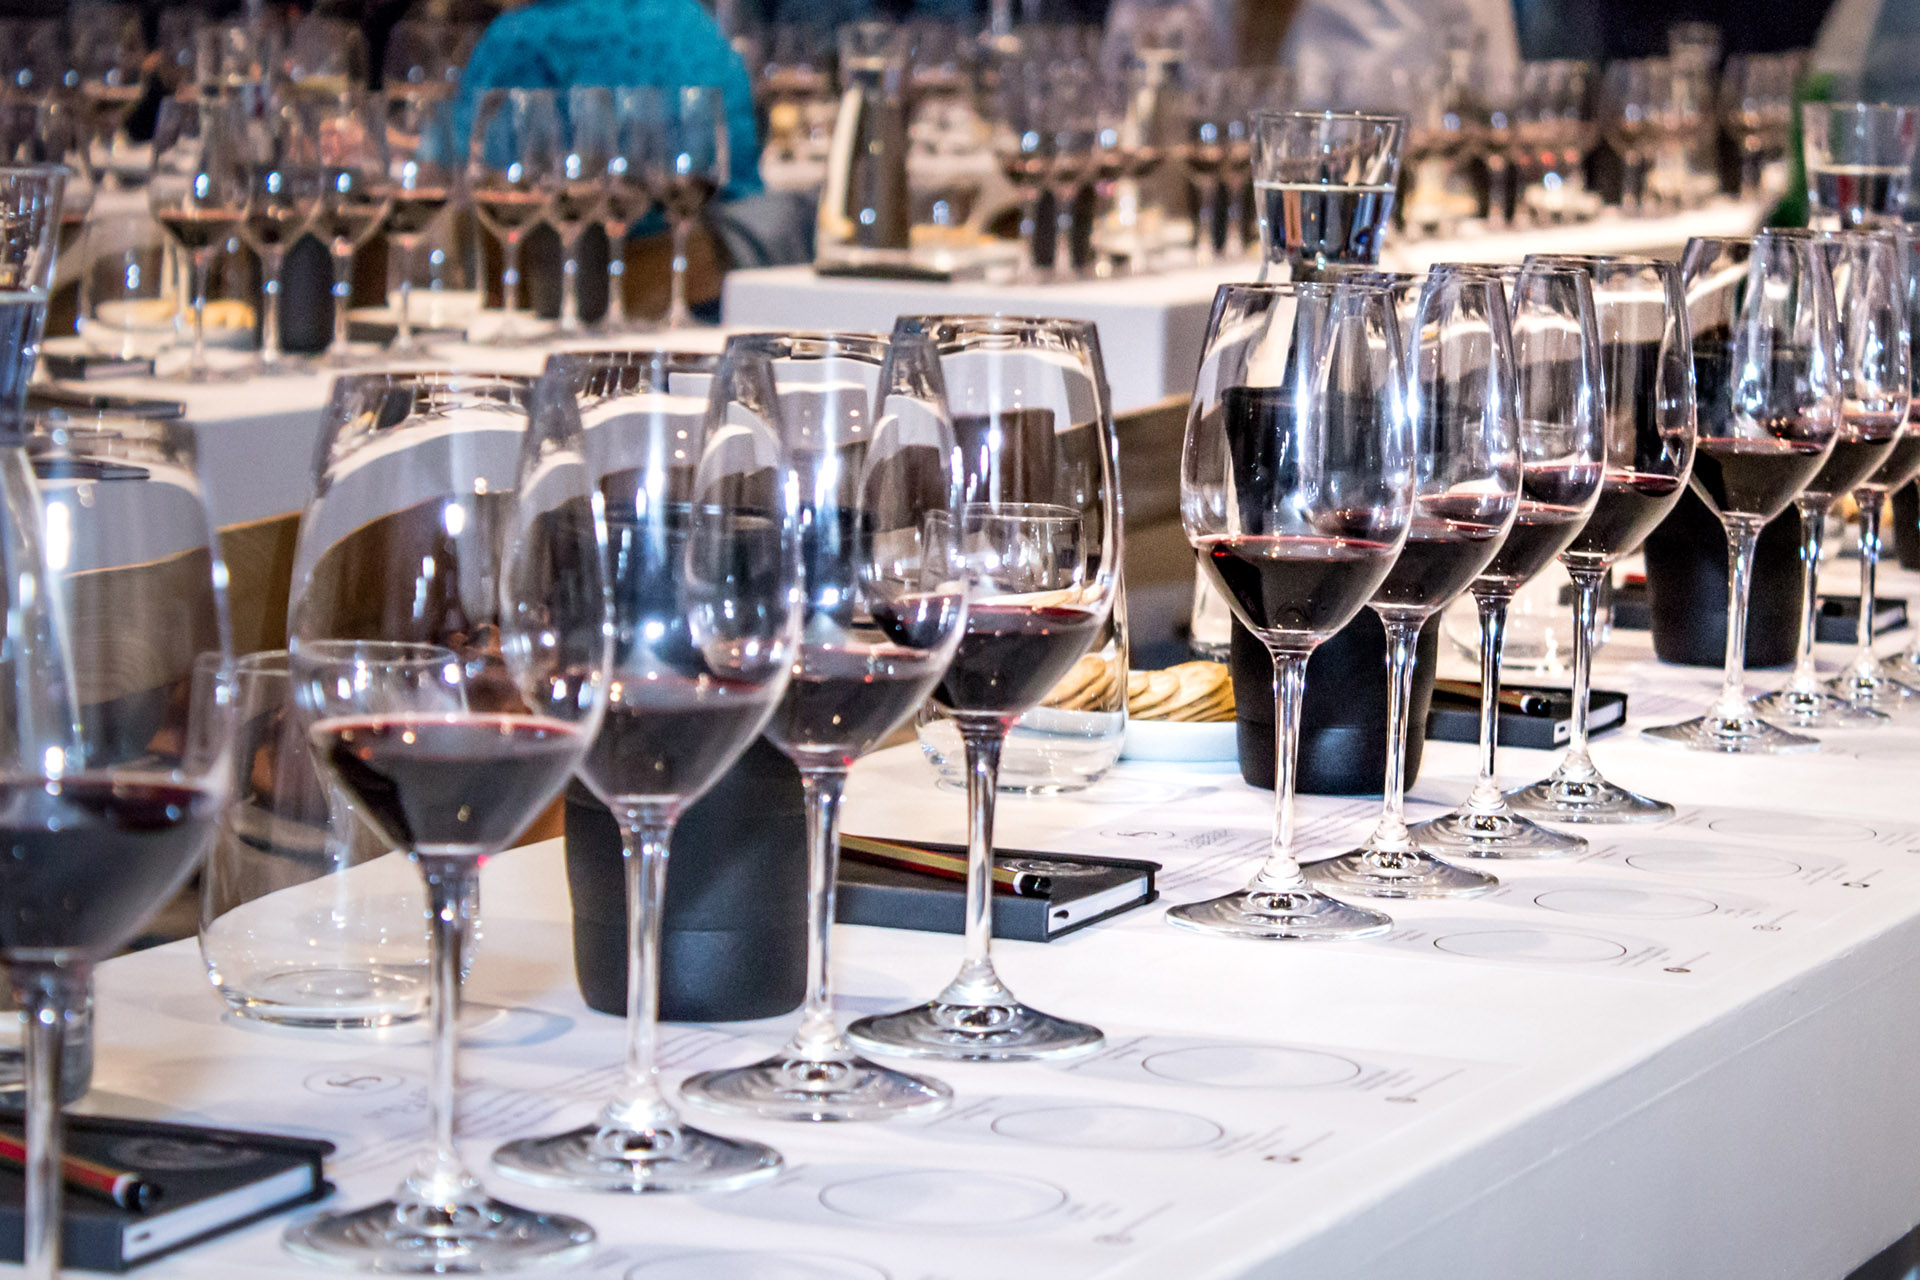 Line of wine glasses with deep red wine in them